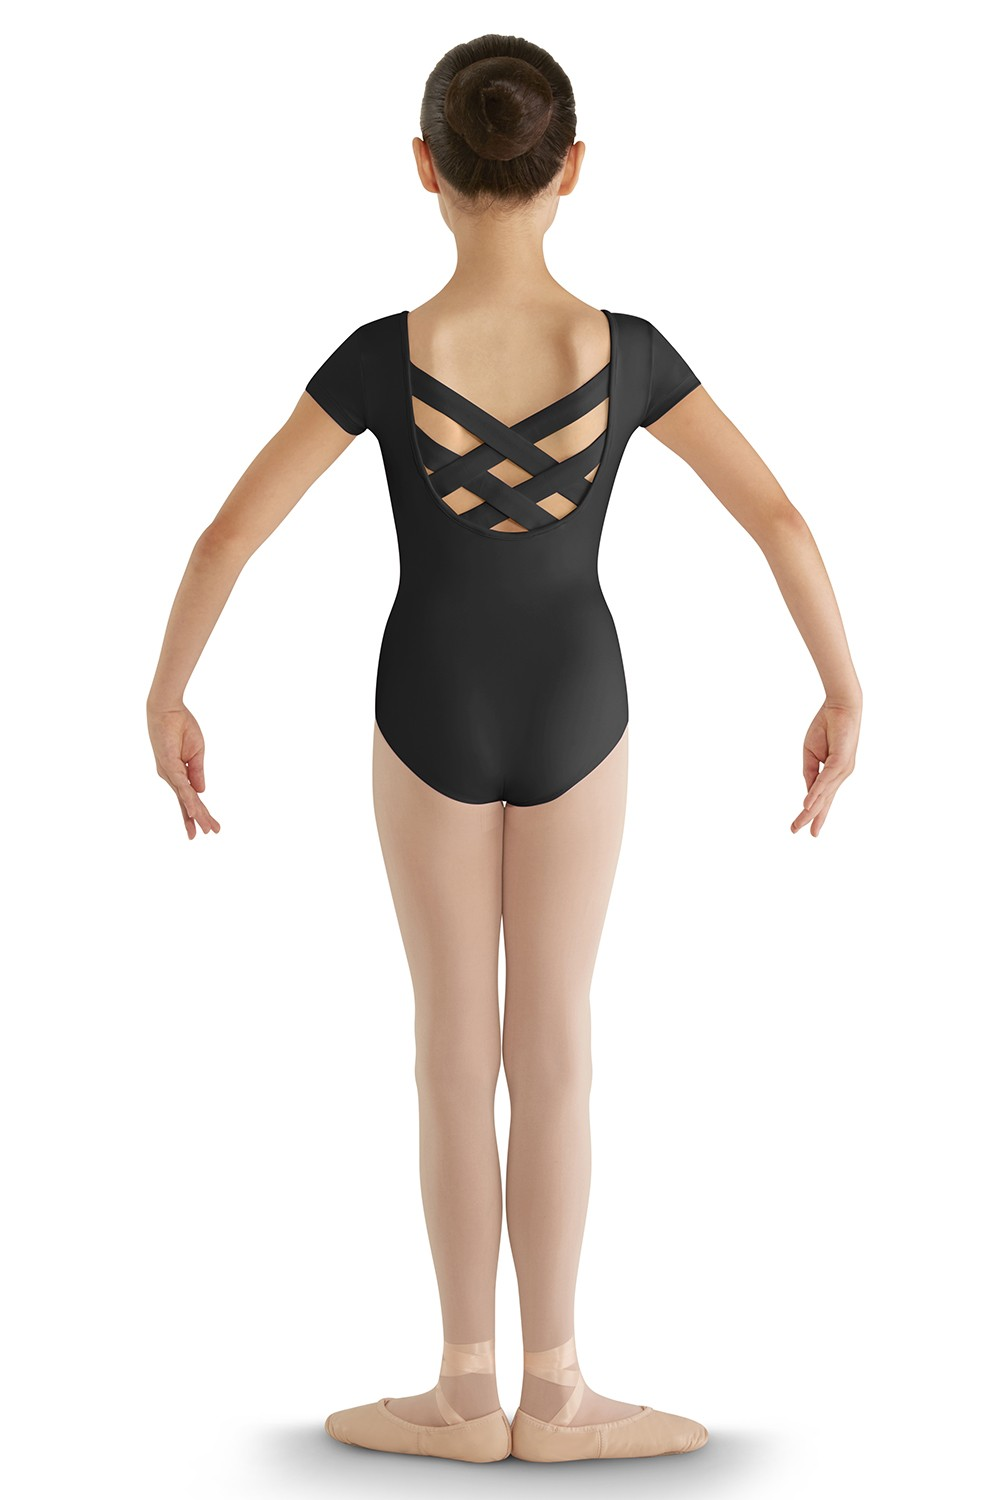 Bellflower Children's Dance Leotards